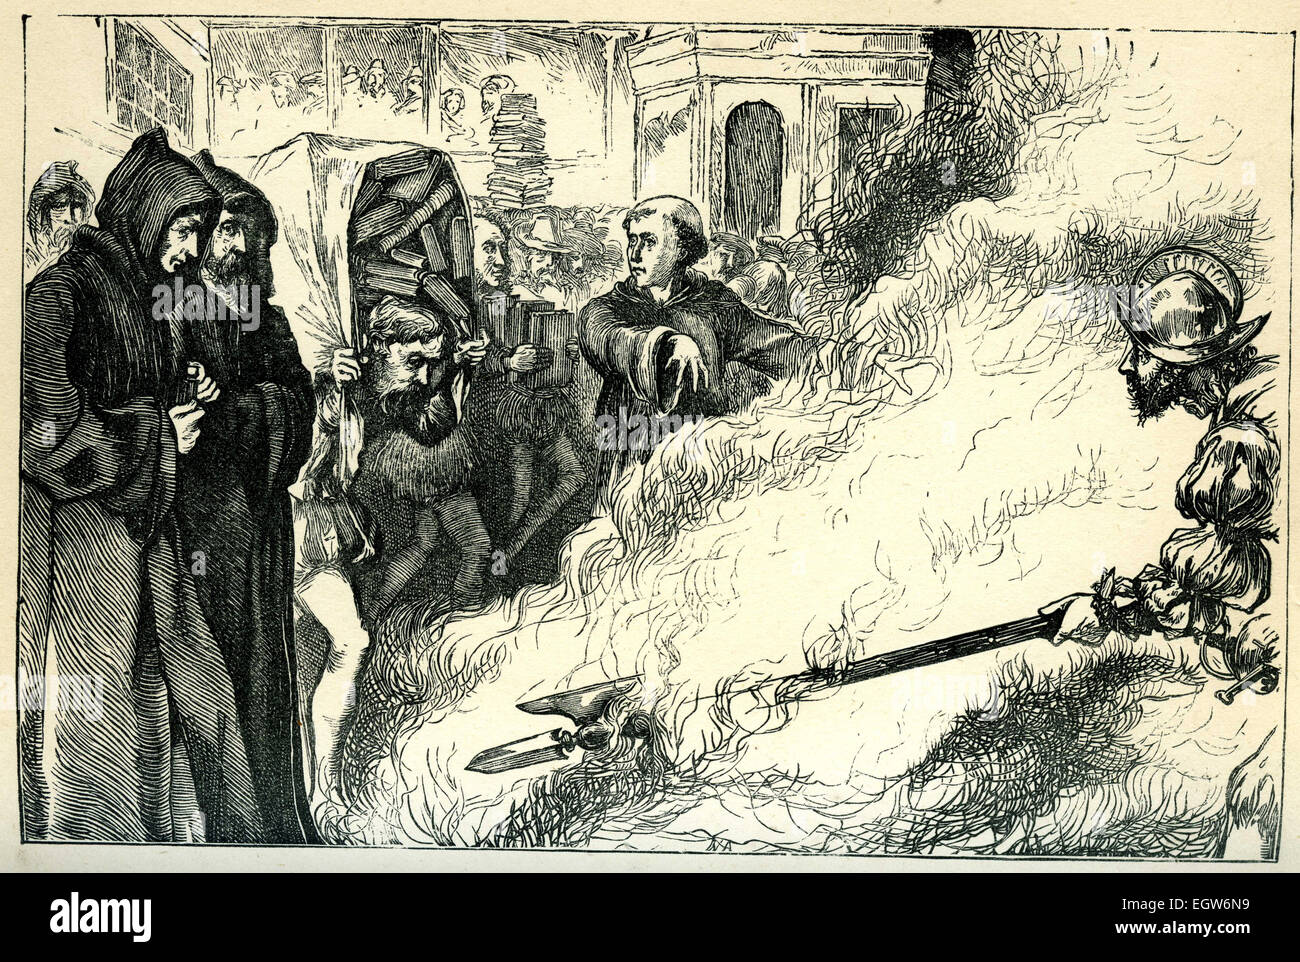 Catholics burn copies of William Tyndale's translation of the New Testament into English in 1525. - Stock Image